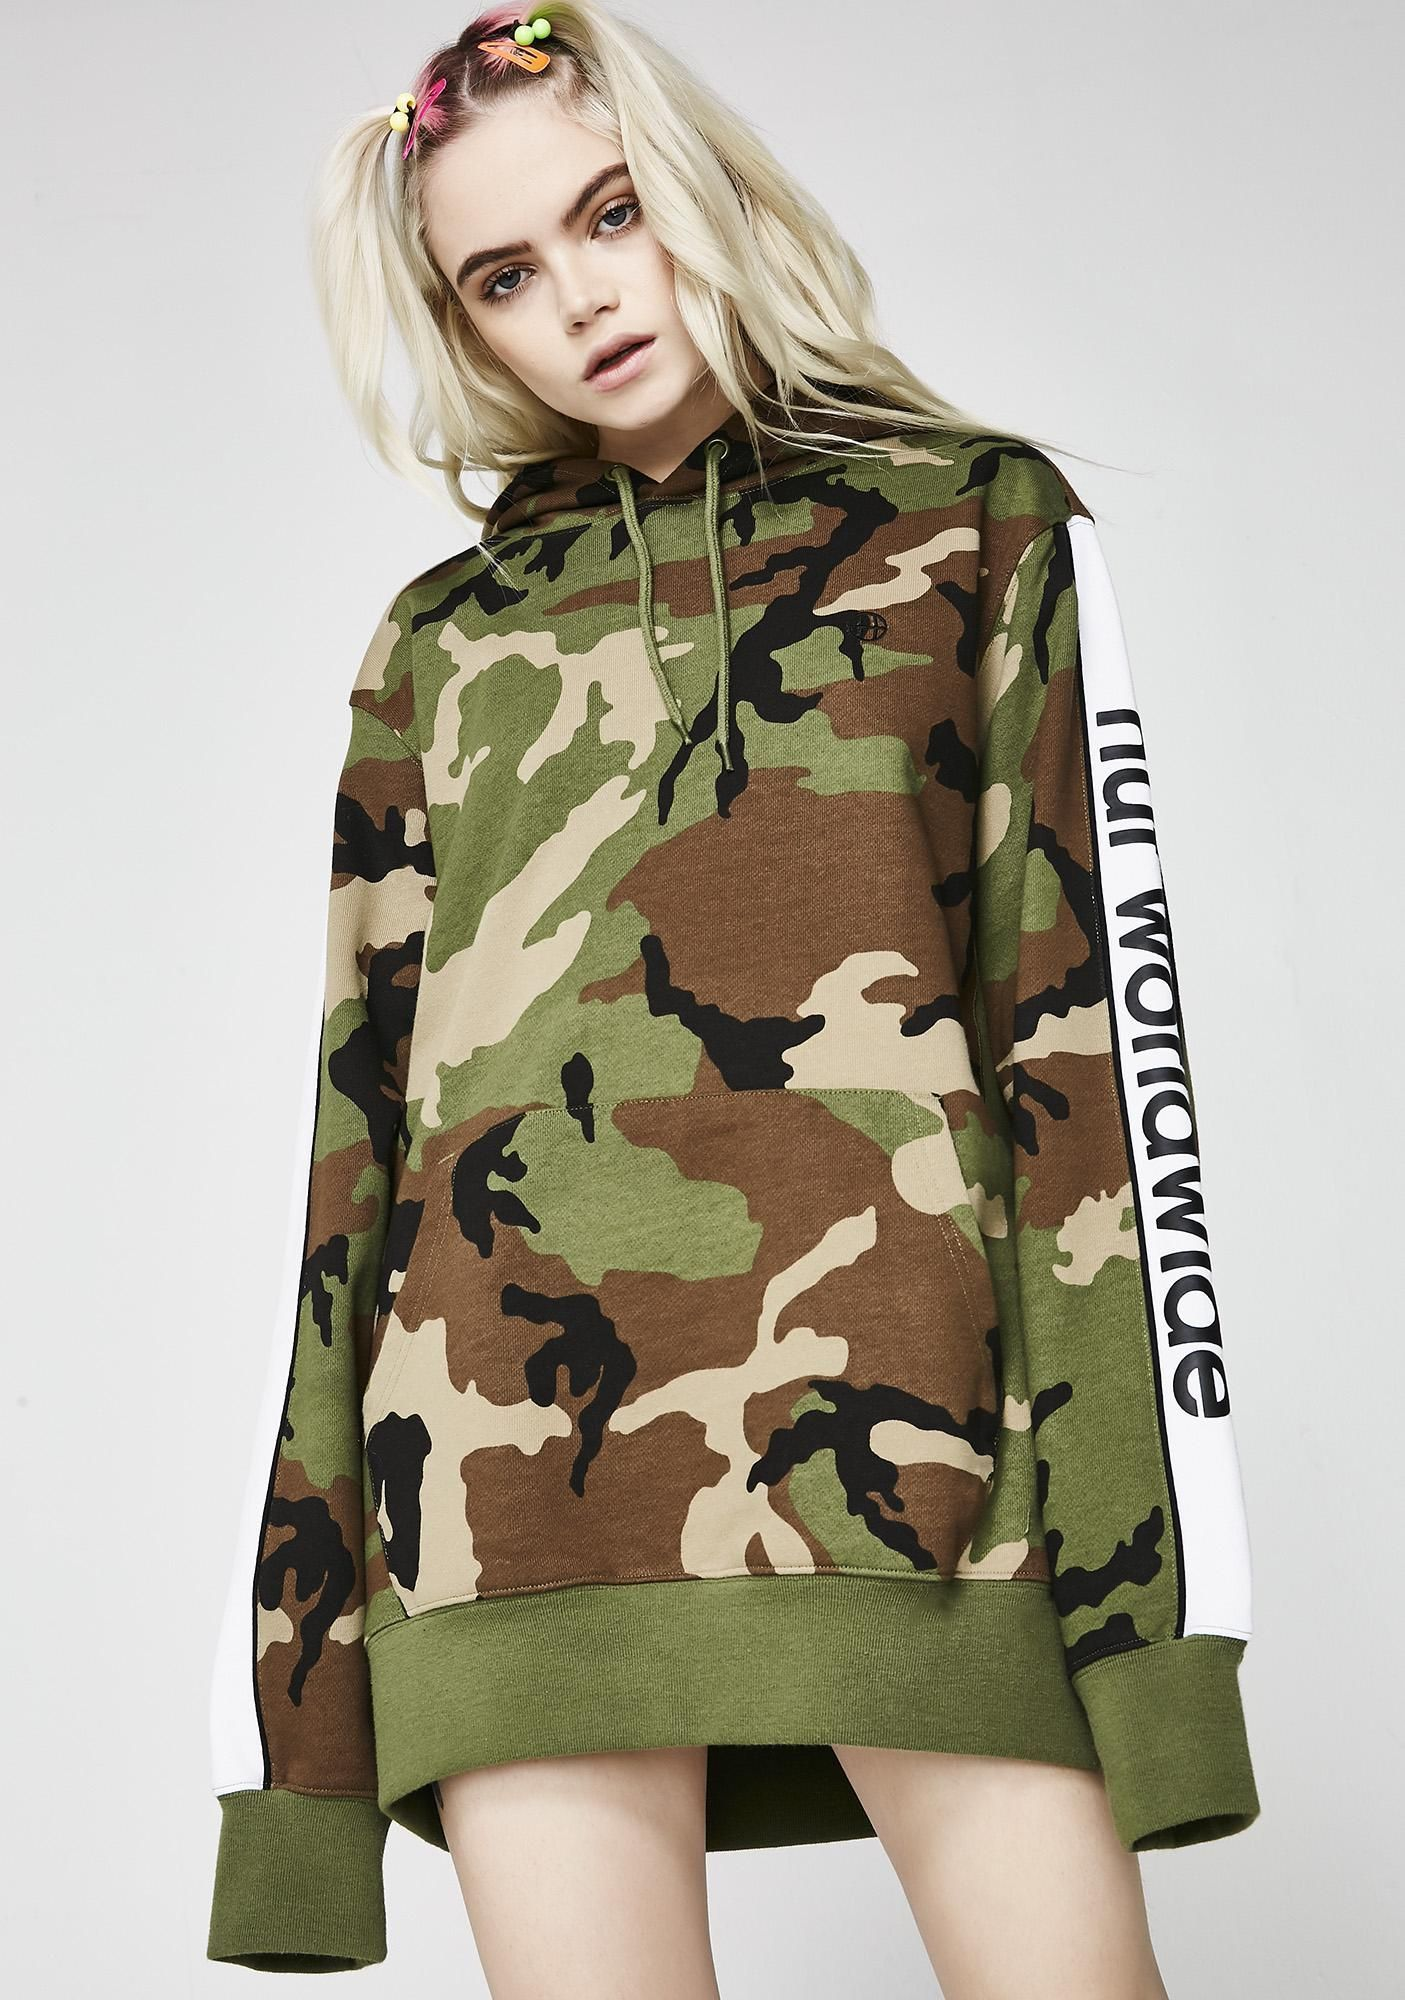 Worldwide P/O Hoodie #boydollsincamo HUF Worldwide P/O Hoodie at Dolls Kill, an online punk, goth, rave, kawaii, and streetwear clothing store. FAST & FREE WORLDWIDE SHIPPING. Shop trends and your favorite brands like Lime Crime, Wildfox Couture, Killstar, BOY London, and Y.R.U. #boydollsincamo Worldwide P/O Hoodie #boydollsincamo HUF Worldwide P/O Hoodie at Dolls Kill, an online punk, goth, rave, kawaii, and streetwear clothing store. FAST & FREE WORLDWIDE SHIPPING. Shop trends and your favorit #boydollsincamo